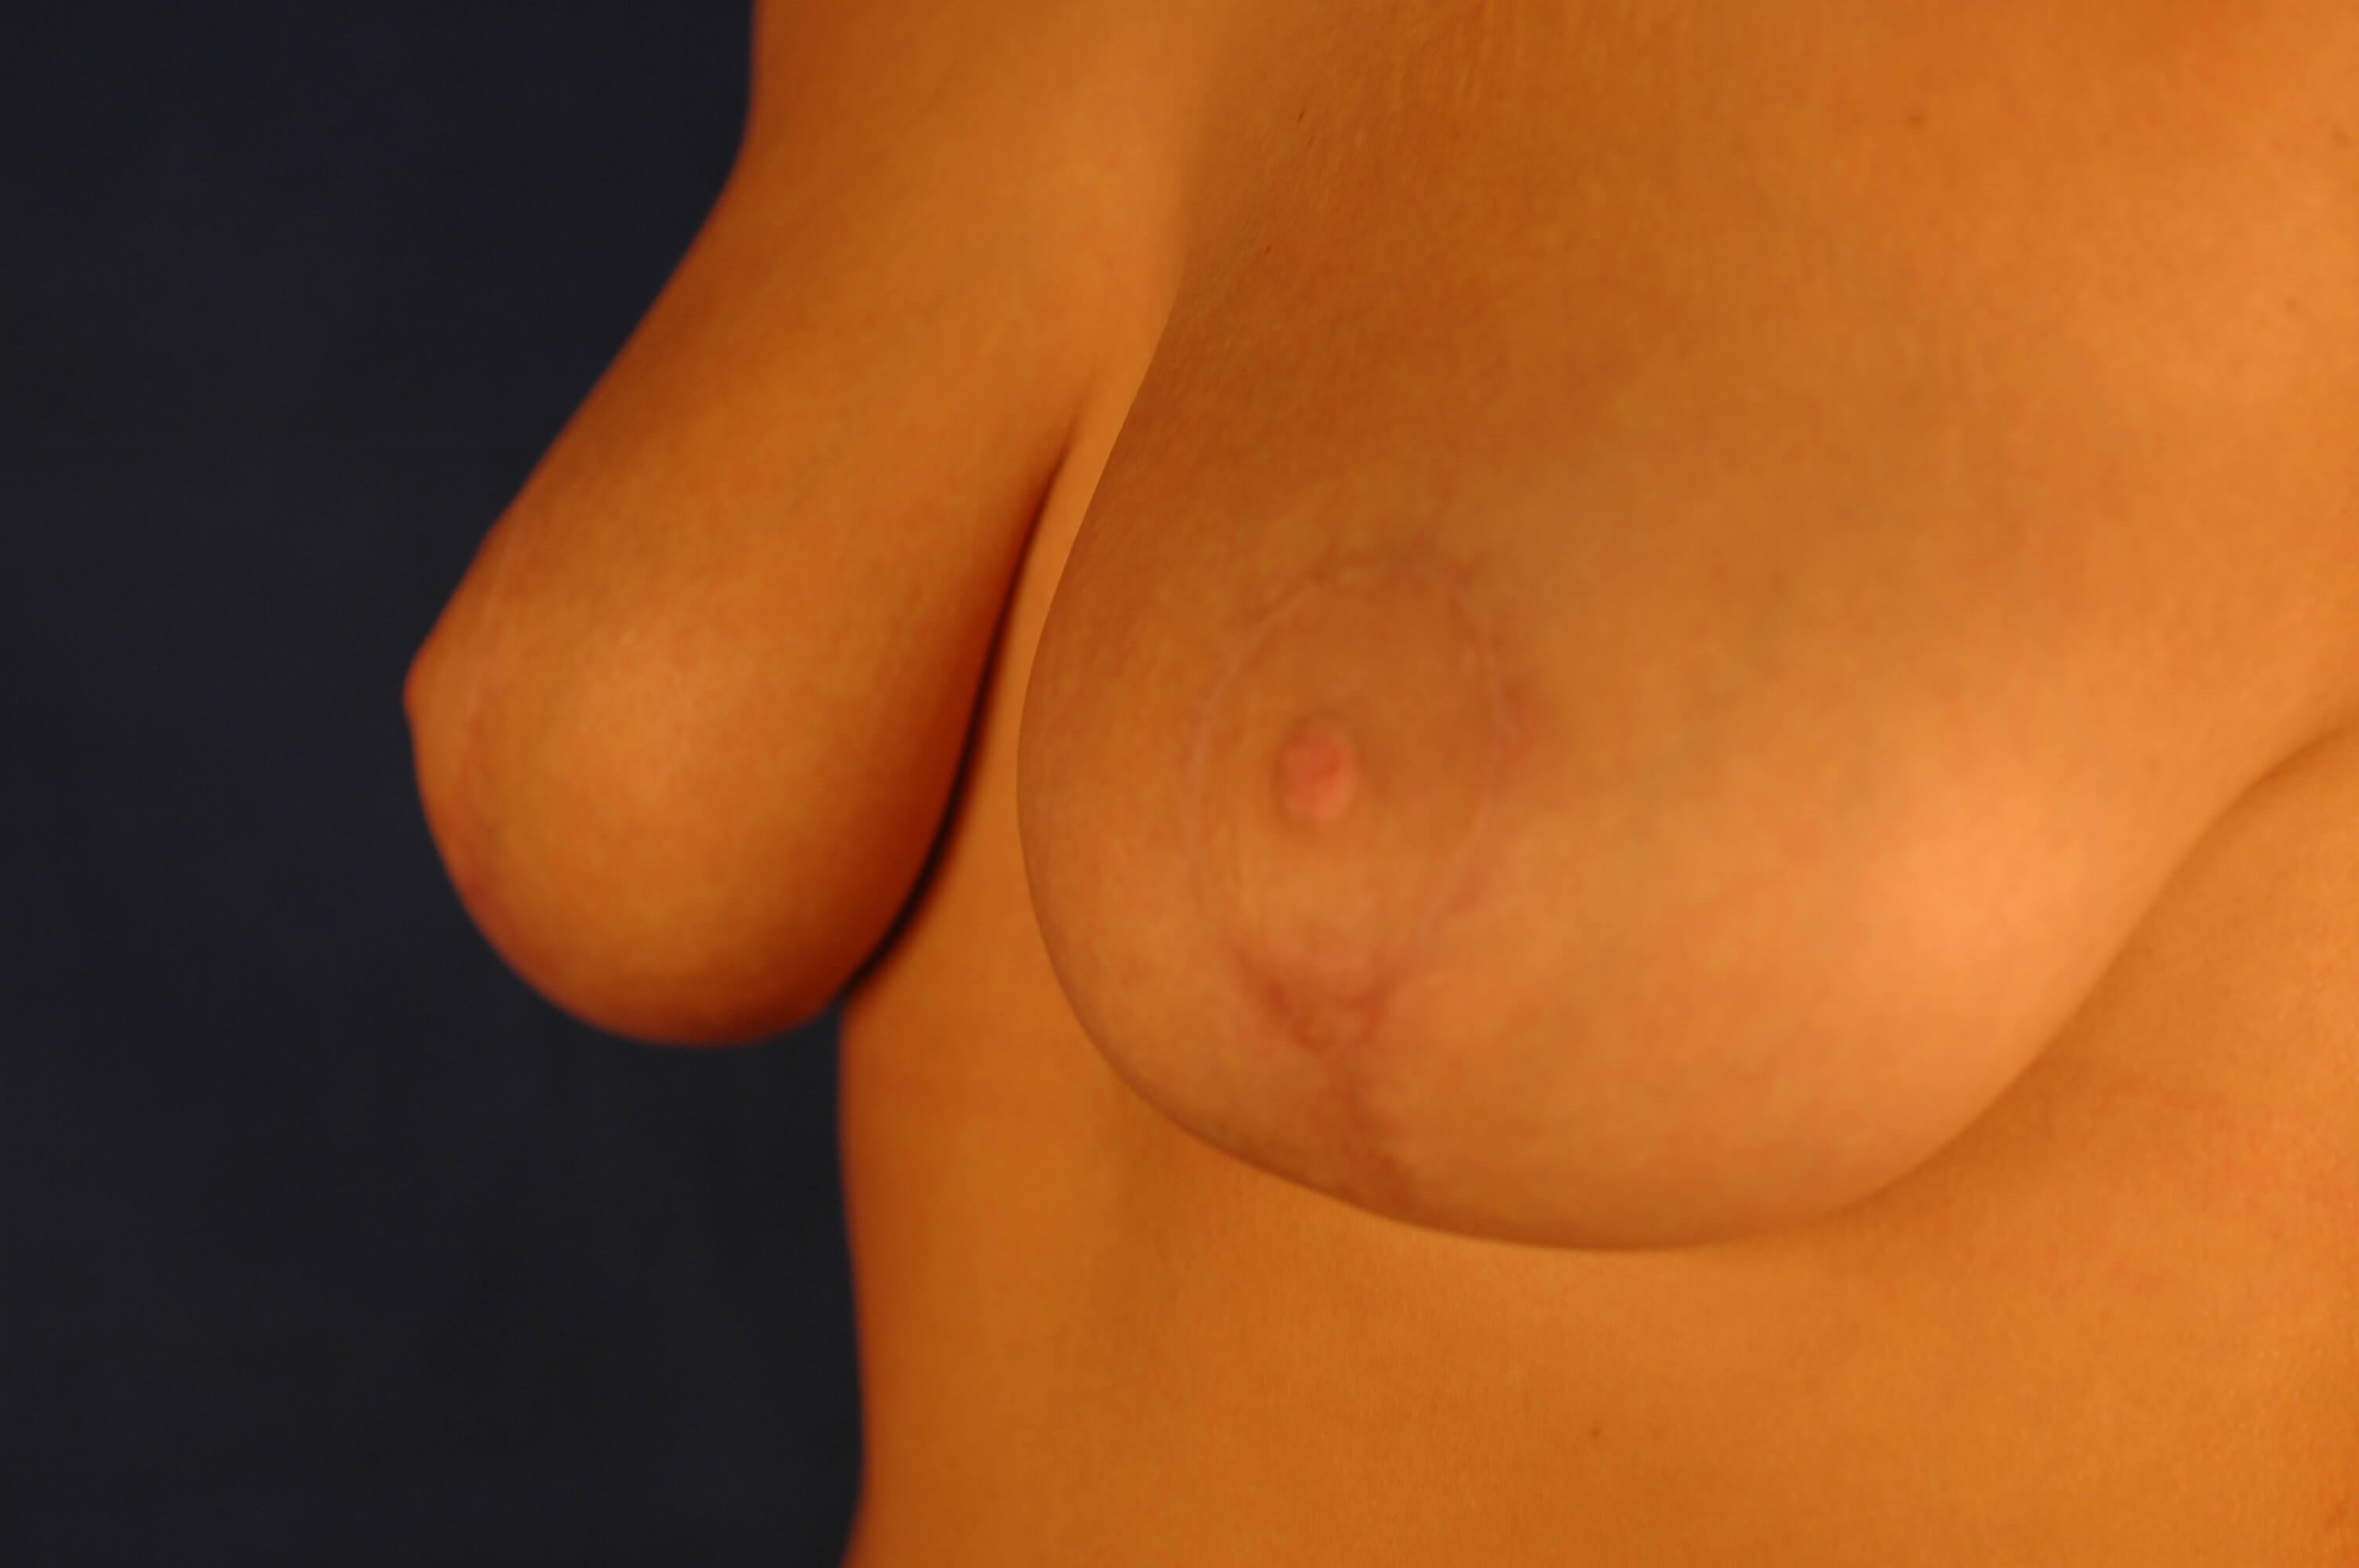 Newport Beach Breast Lift Oblique View After